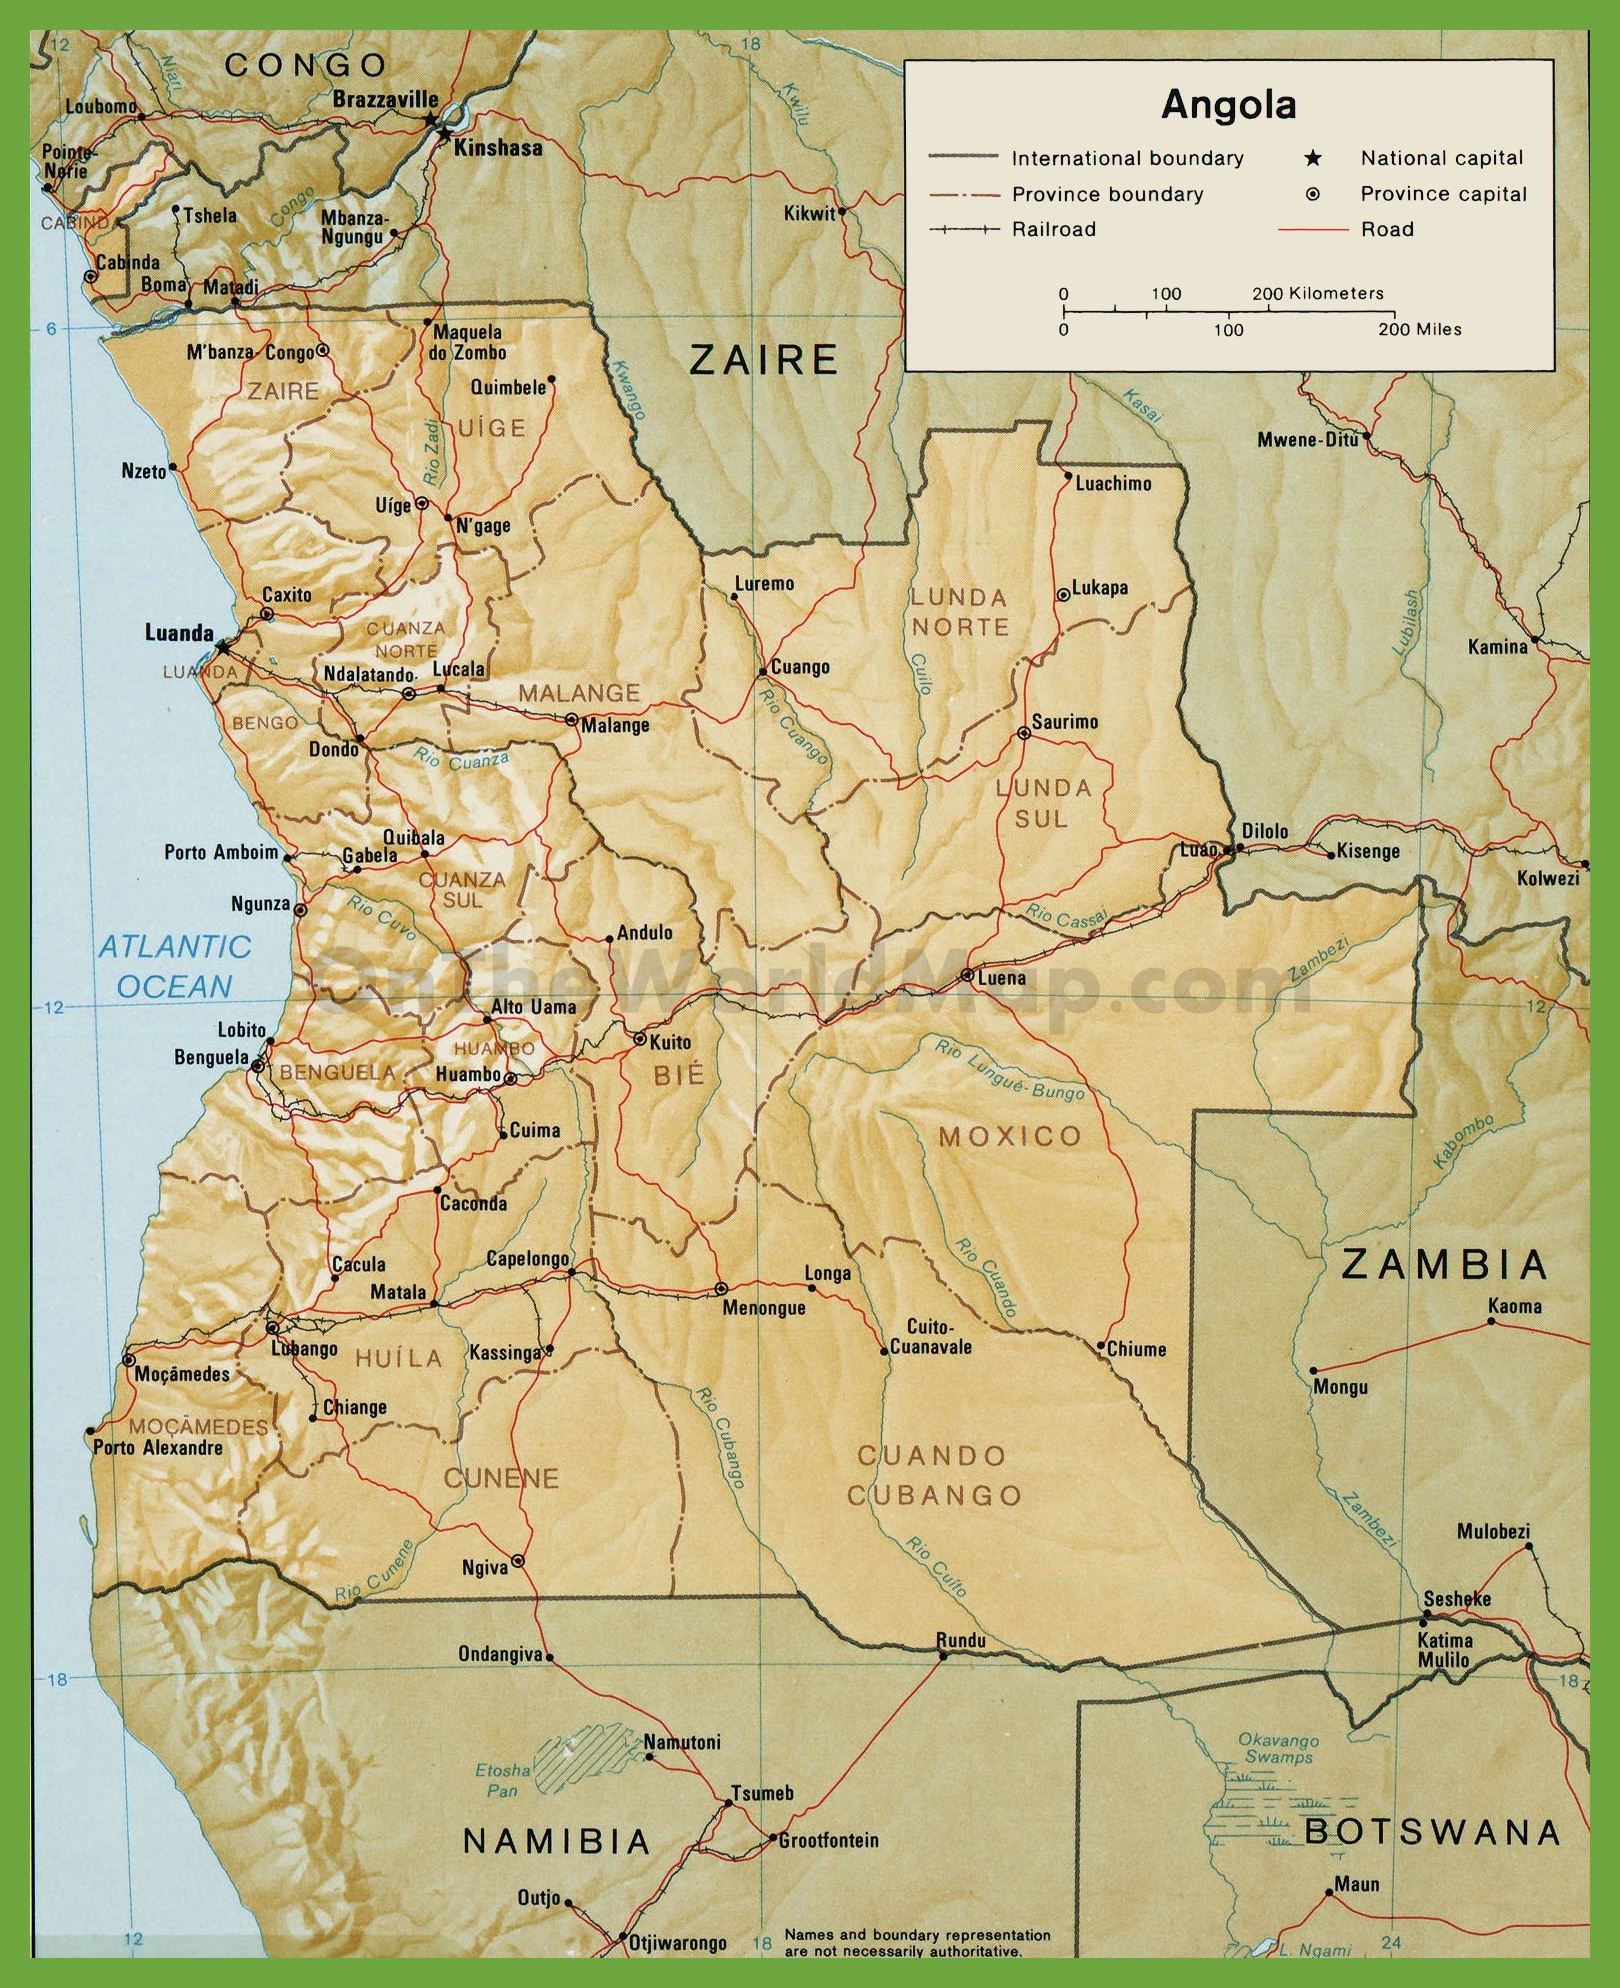 Road Map Of Angola - Angola road map